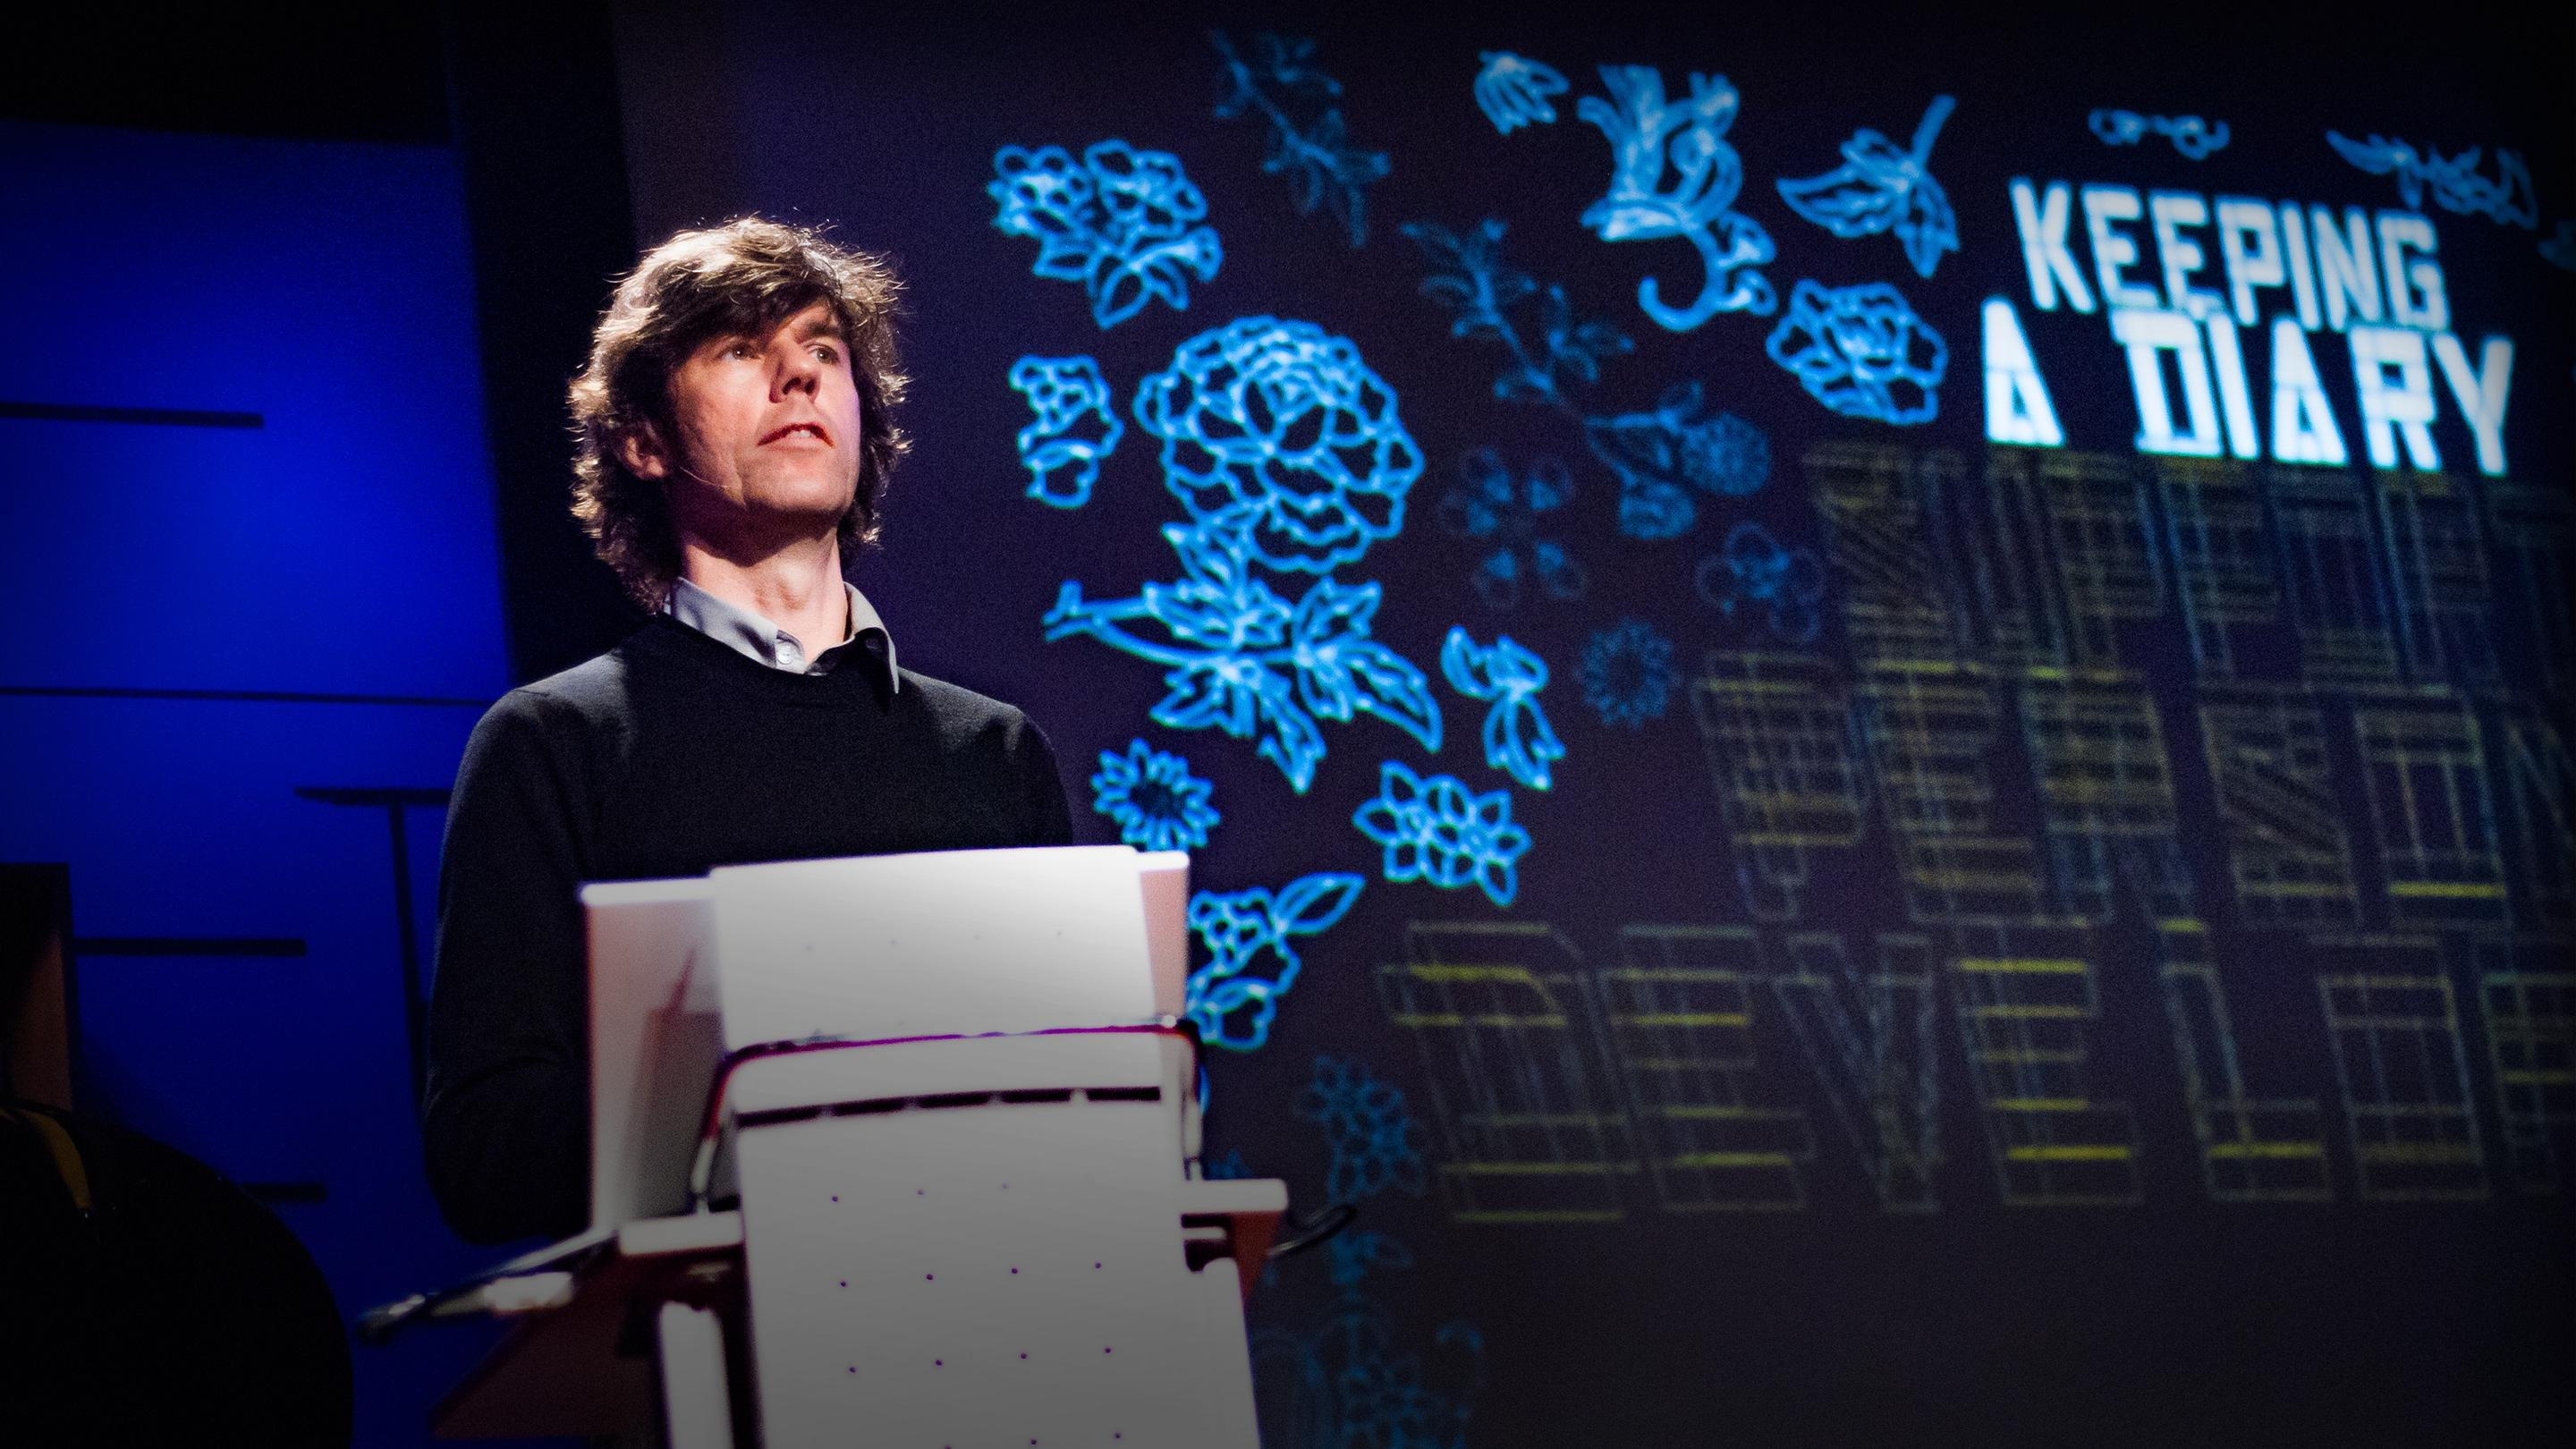 a report on the life of stefan sagmeister Share stefan sagmeister quotations  send report  quote  my diary entries allow me to keep track of all the things i would like to change about my life.